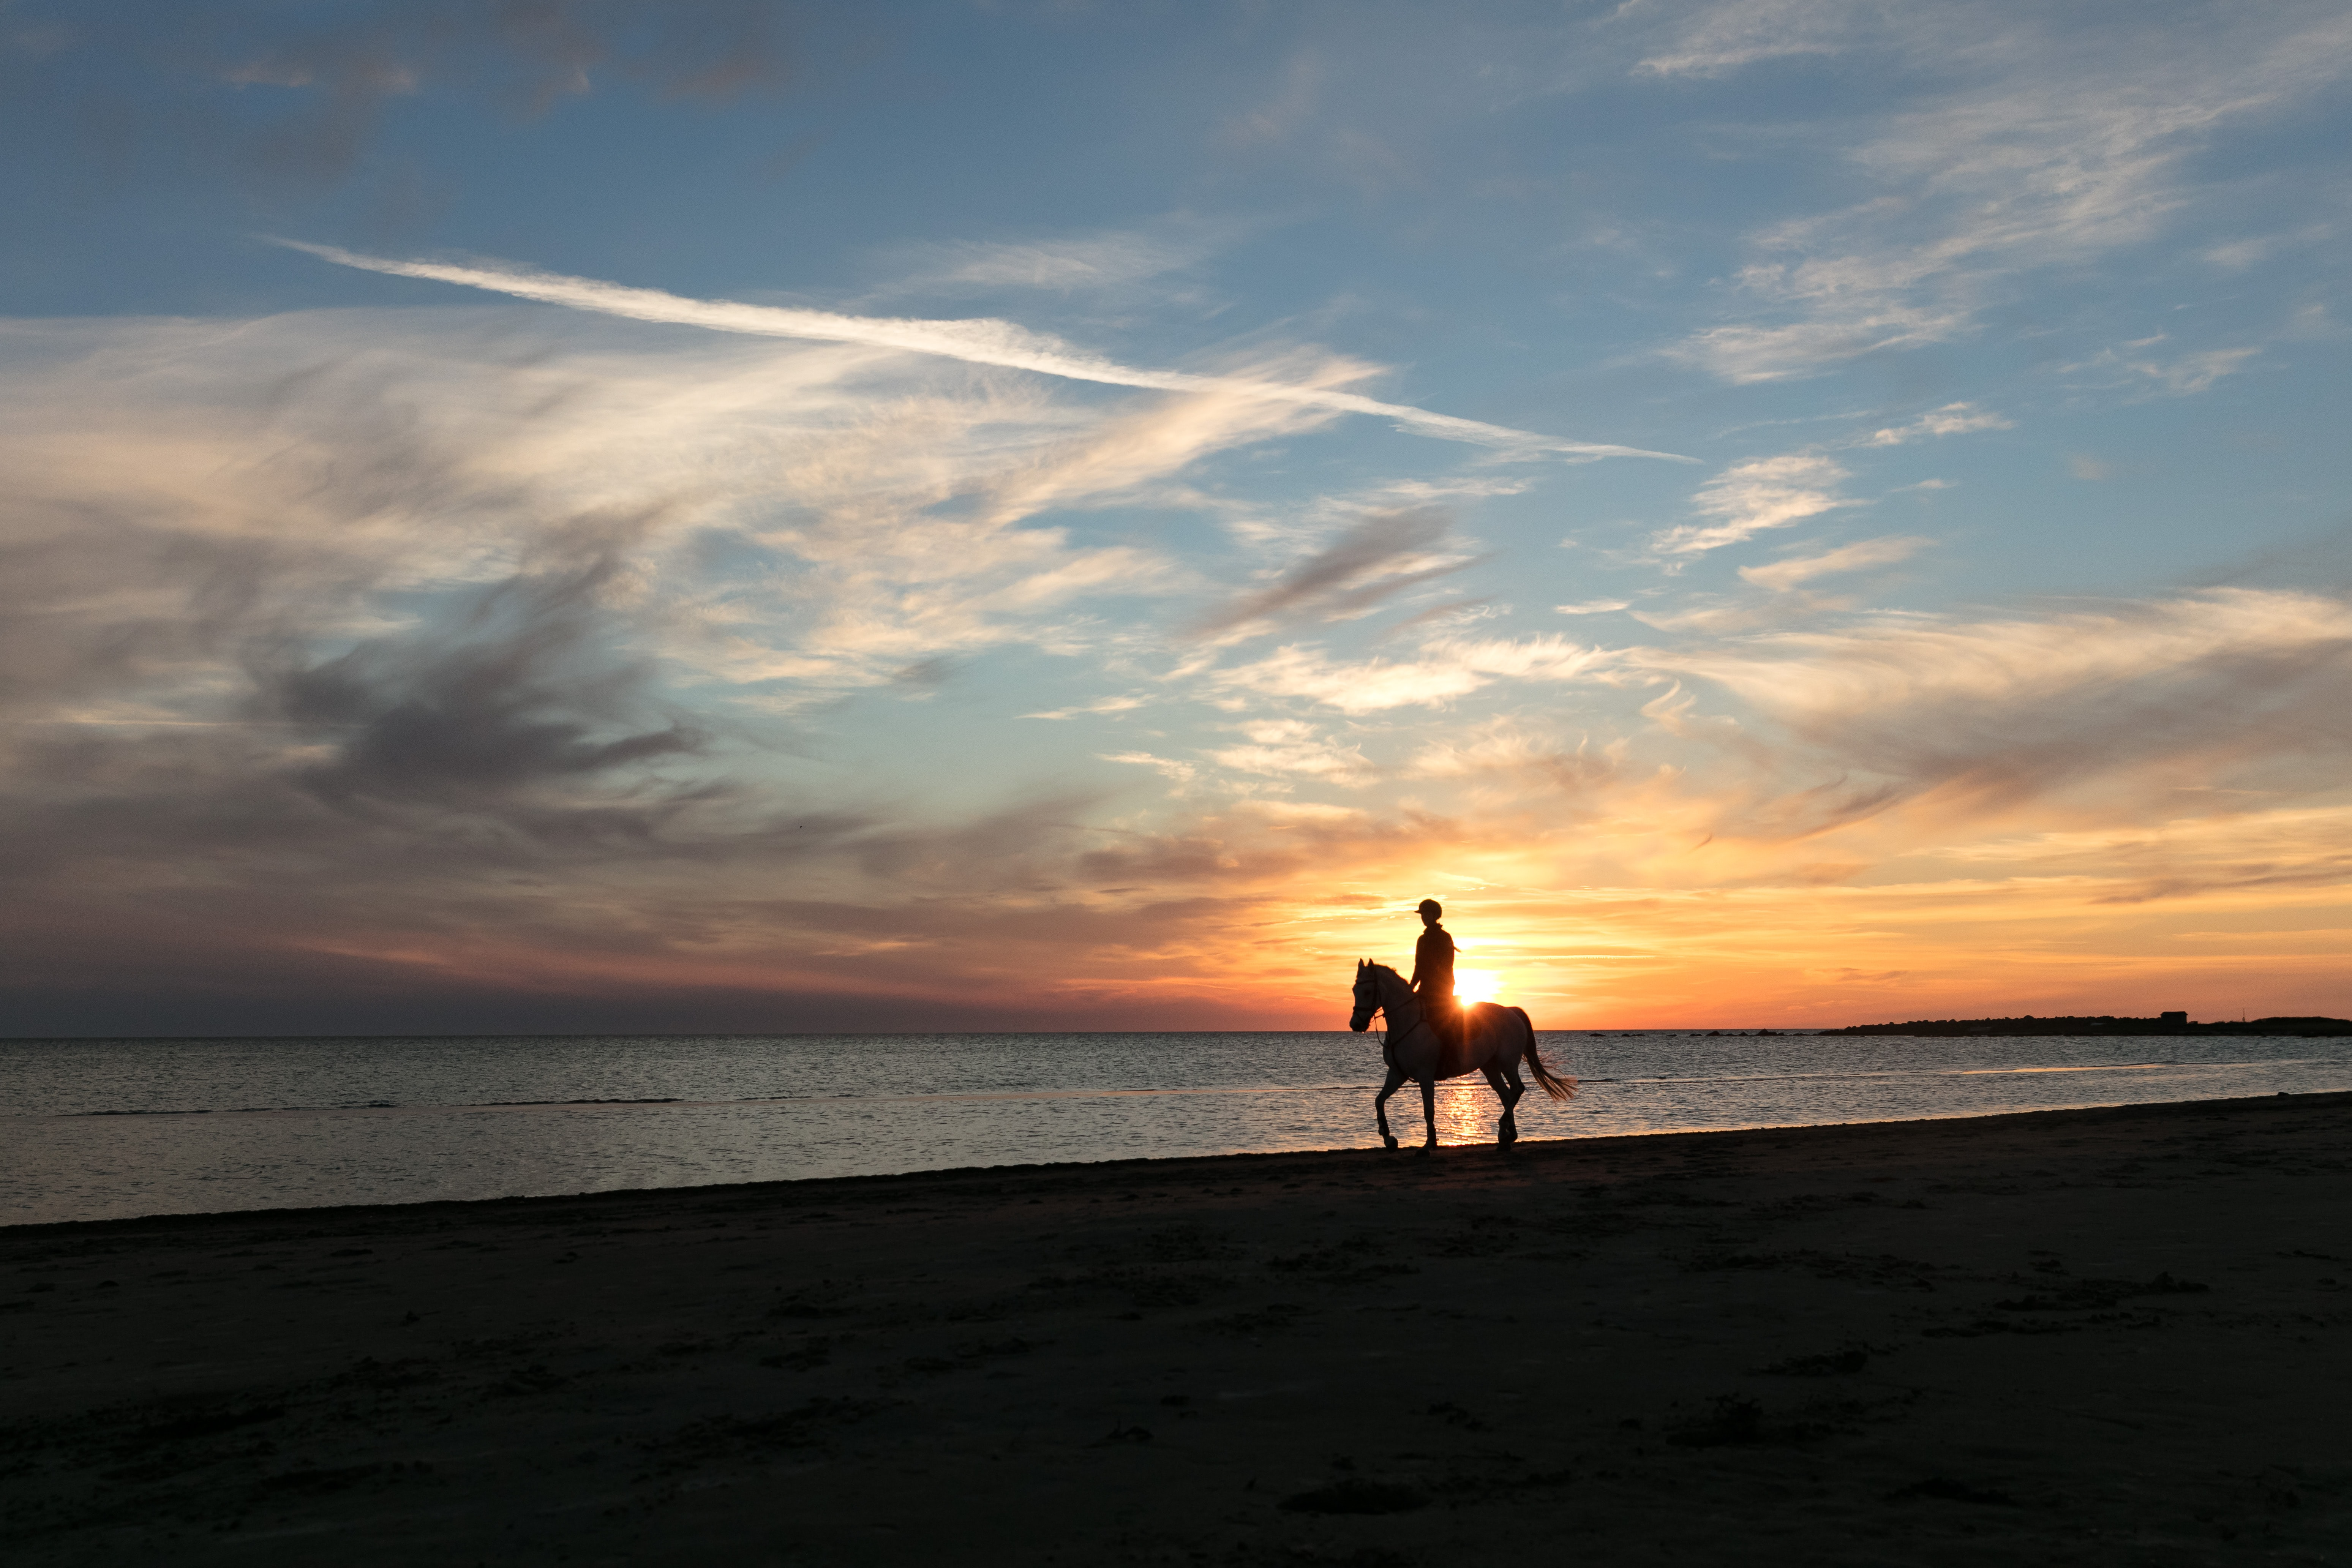 person riding horse near body of water during sunset